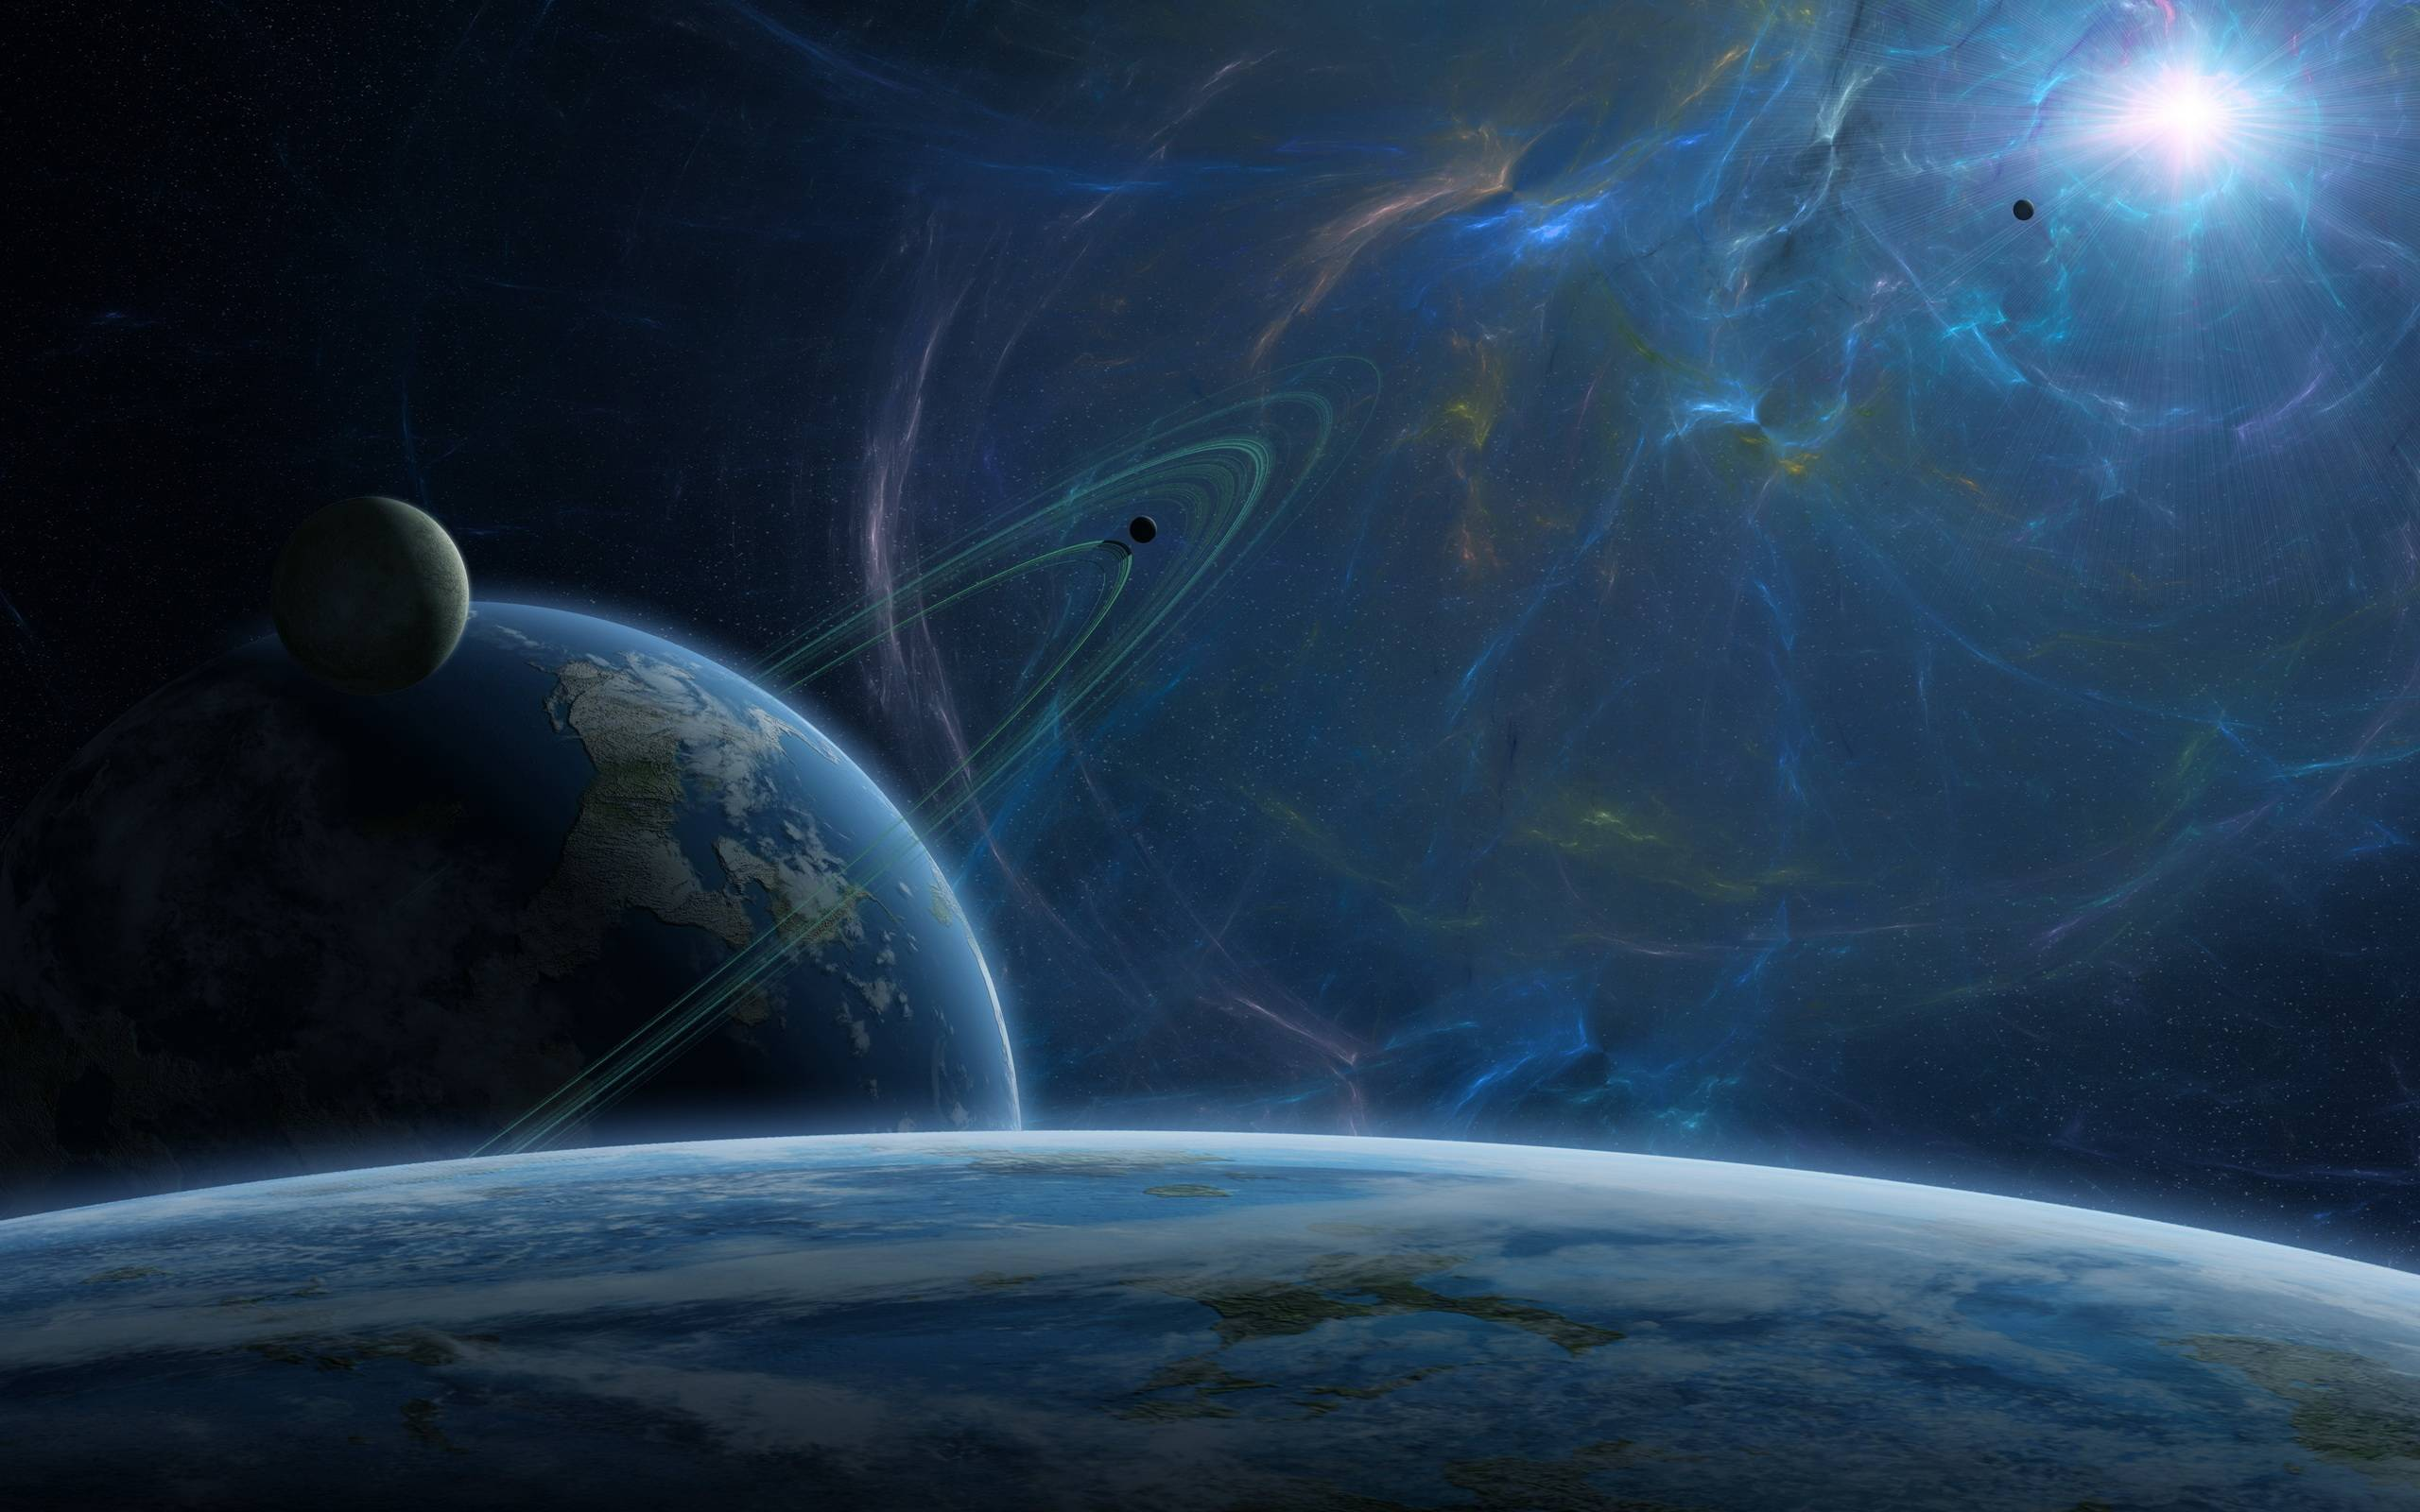 In outer space wallpapers and image